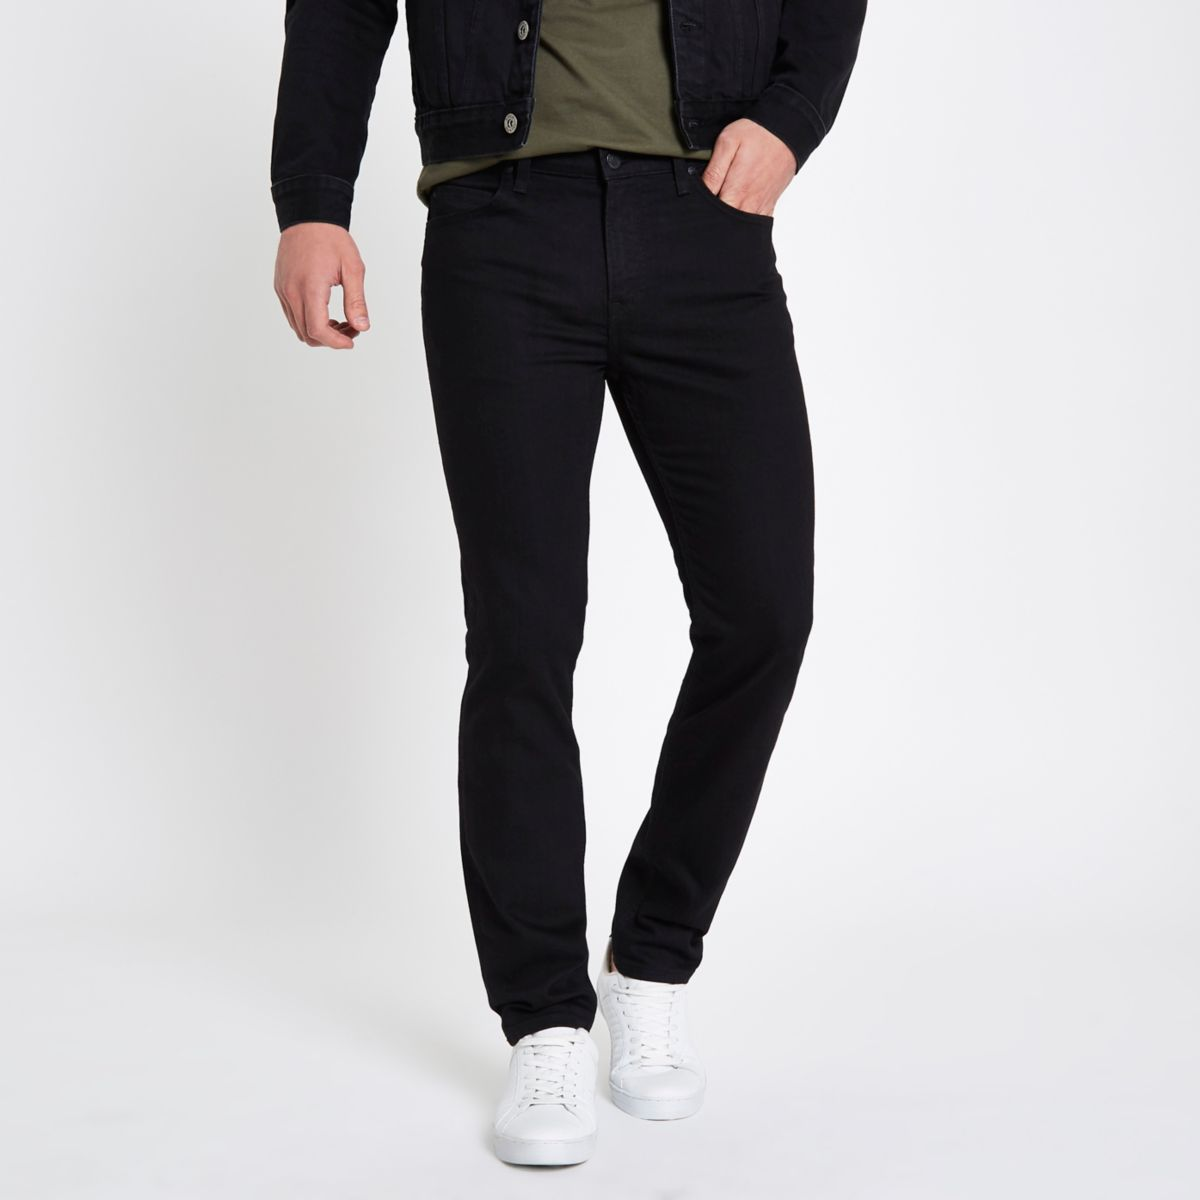 Lee – Schwarze Slim Fit Jeans